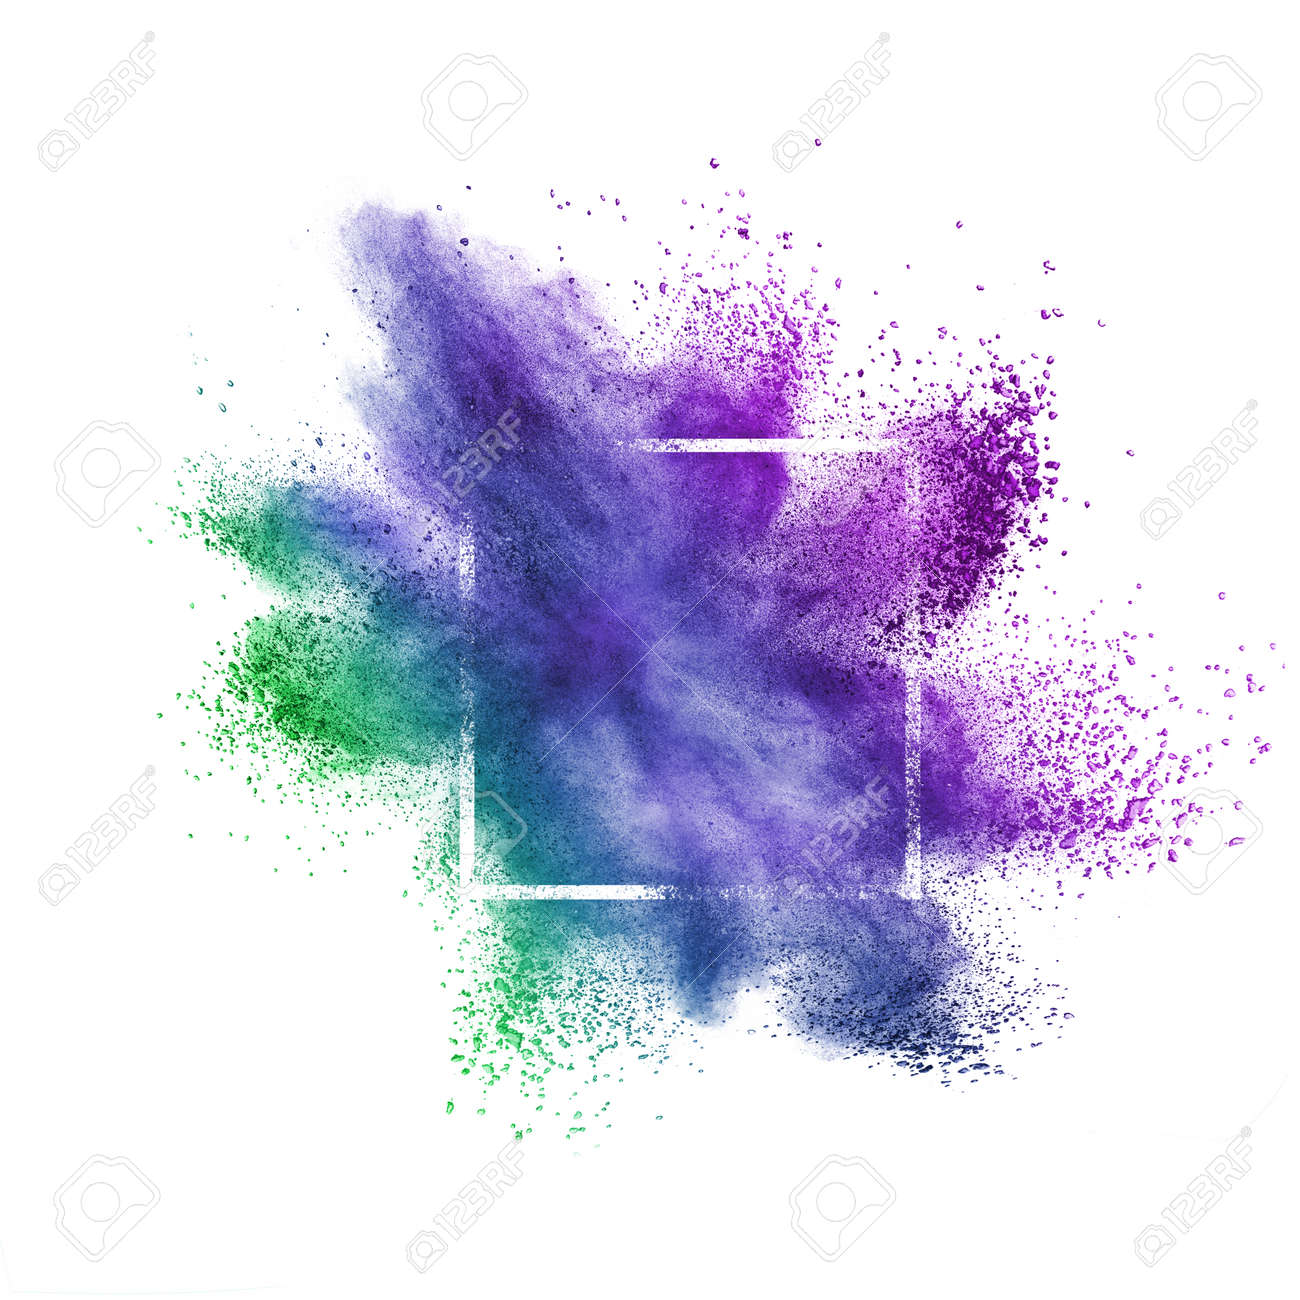 Abstract creative splash from colorful dust or powder in a square frame on a white background with copy space. - 145564280